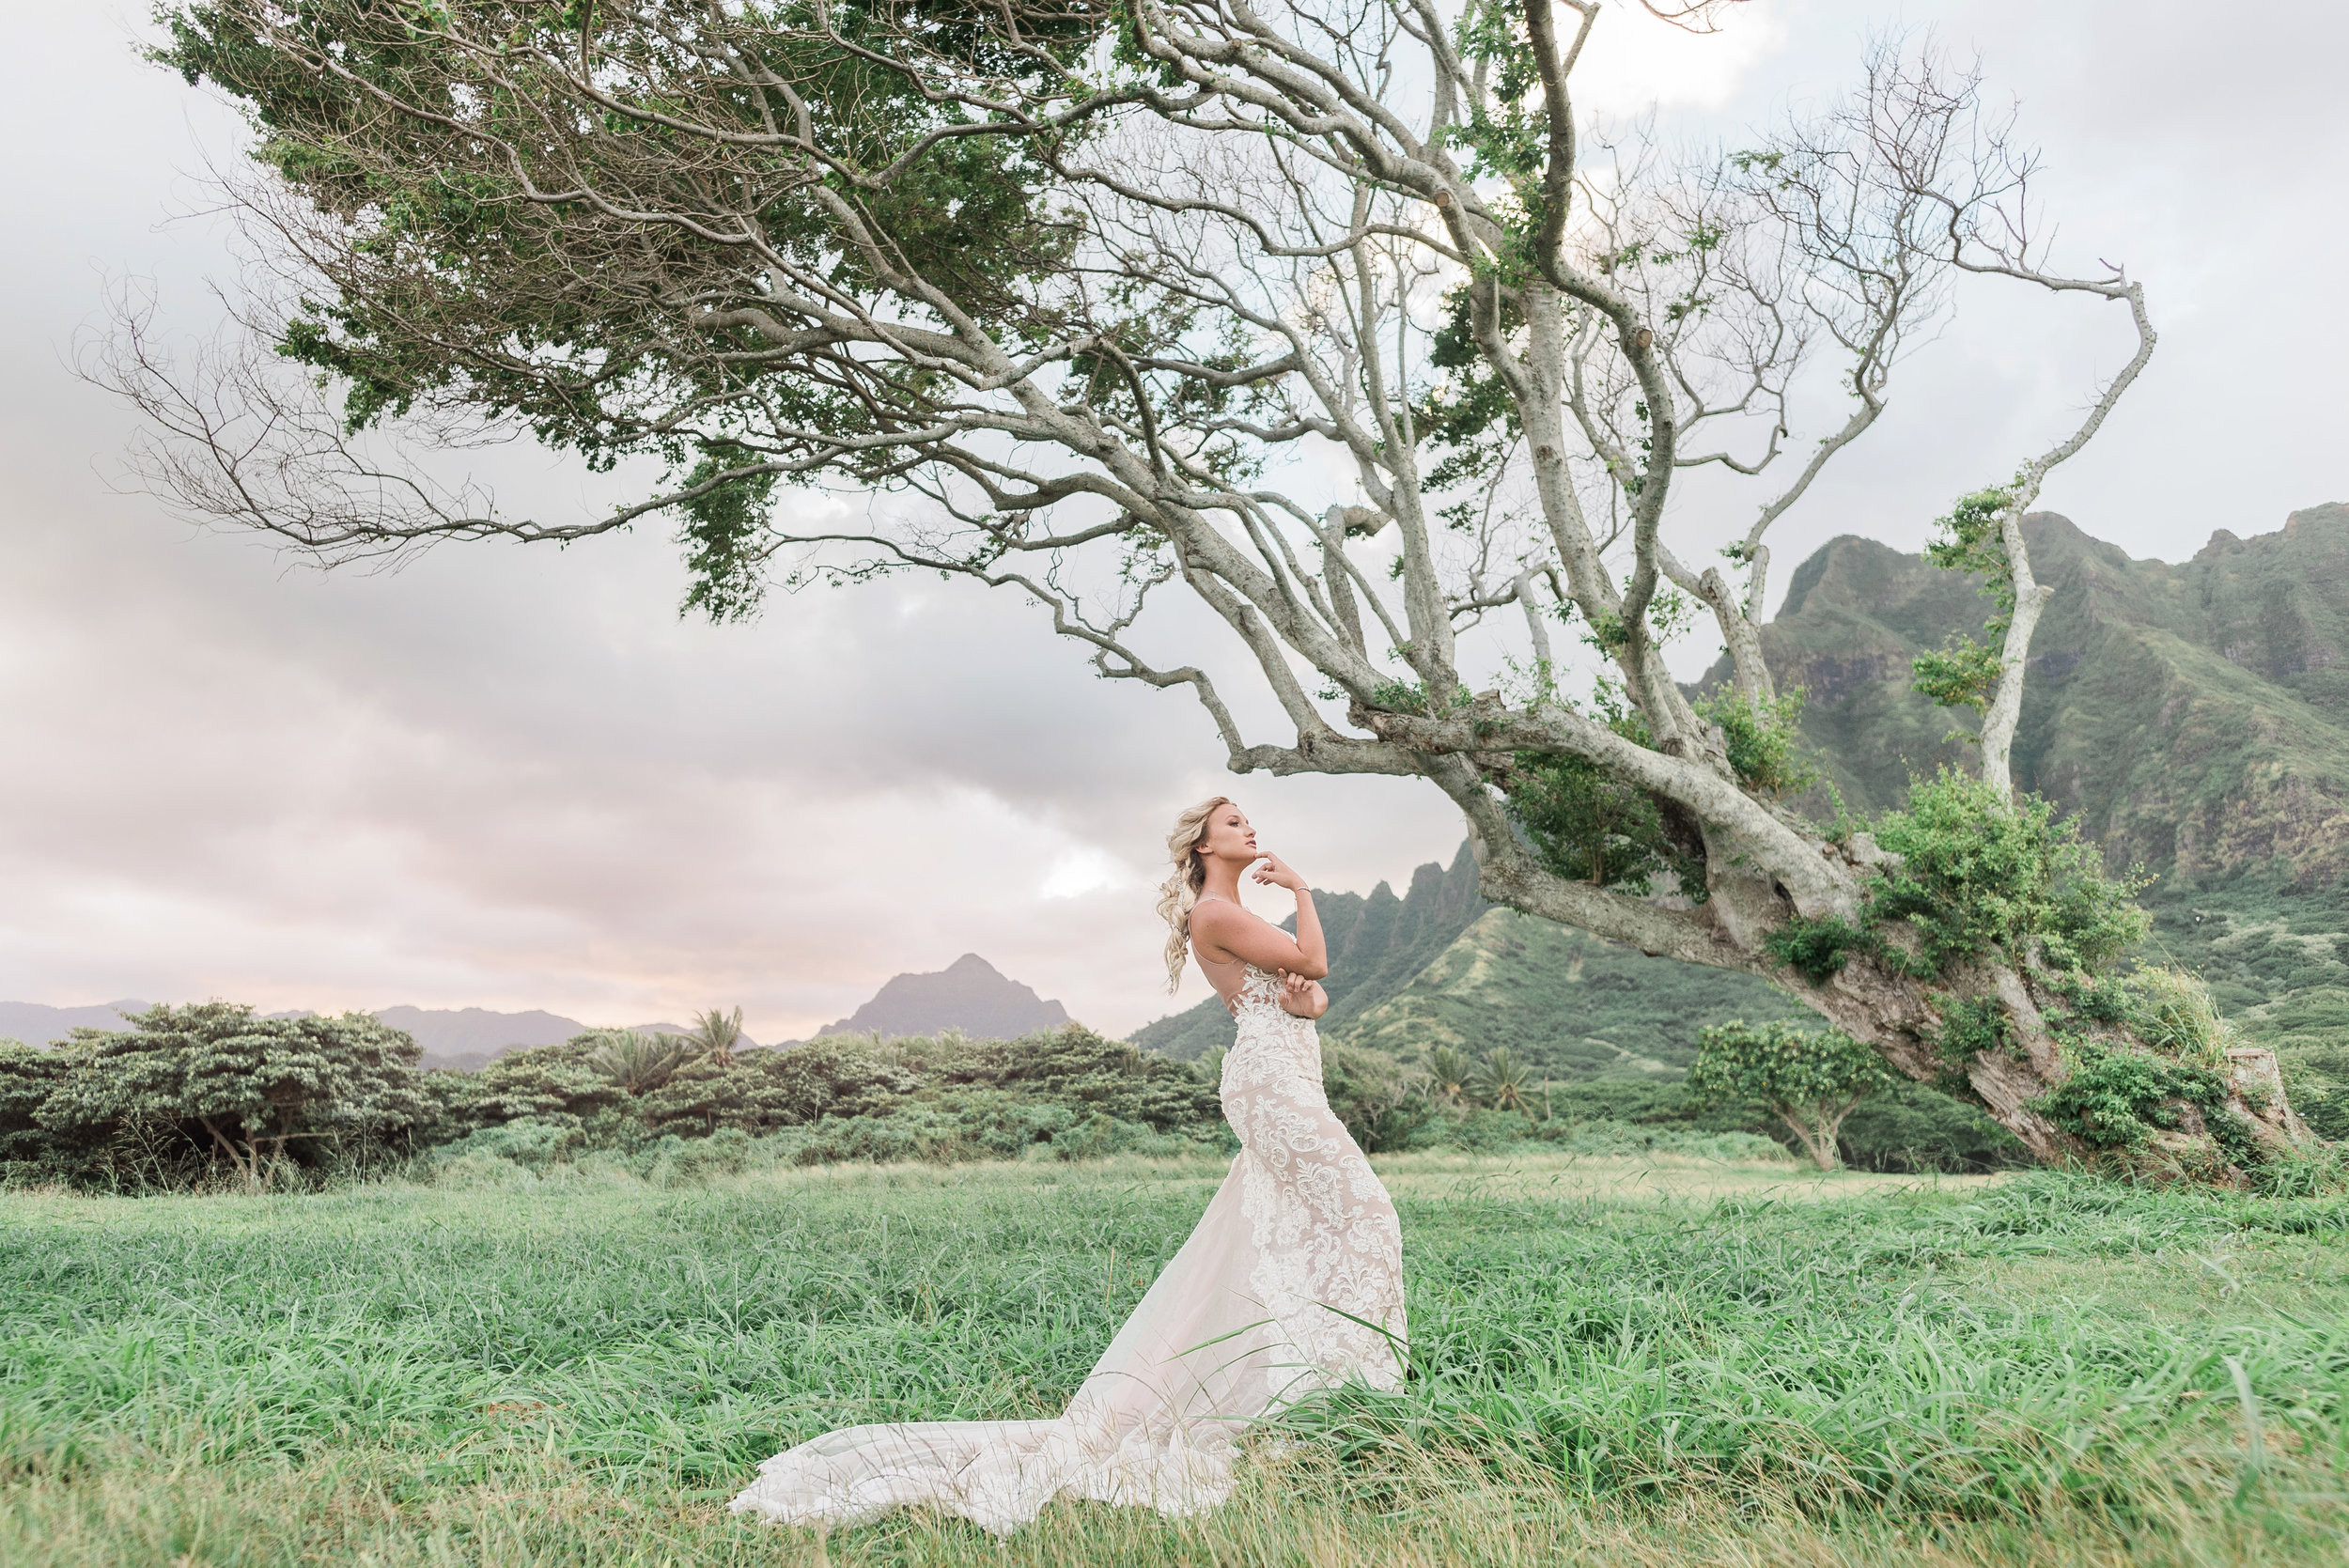 Beauty-Kualoa-41.jpg